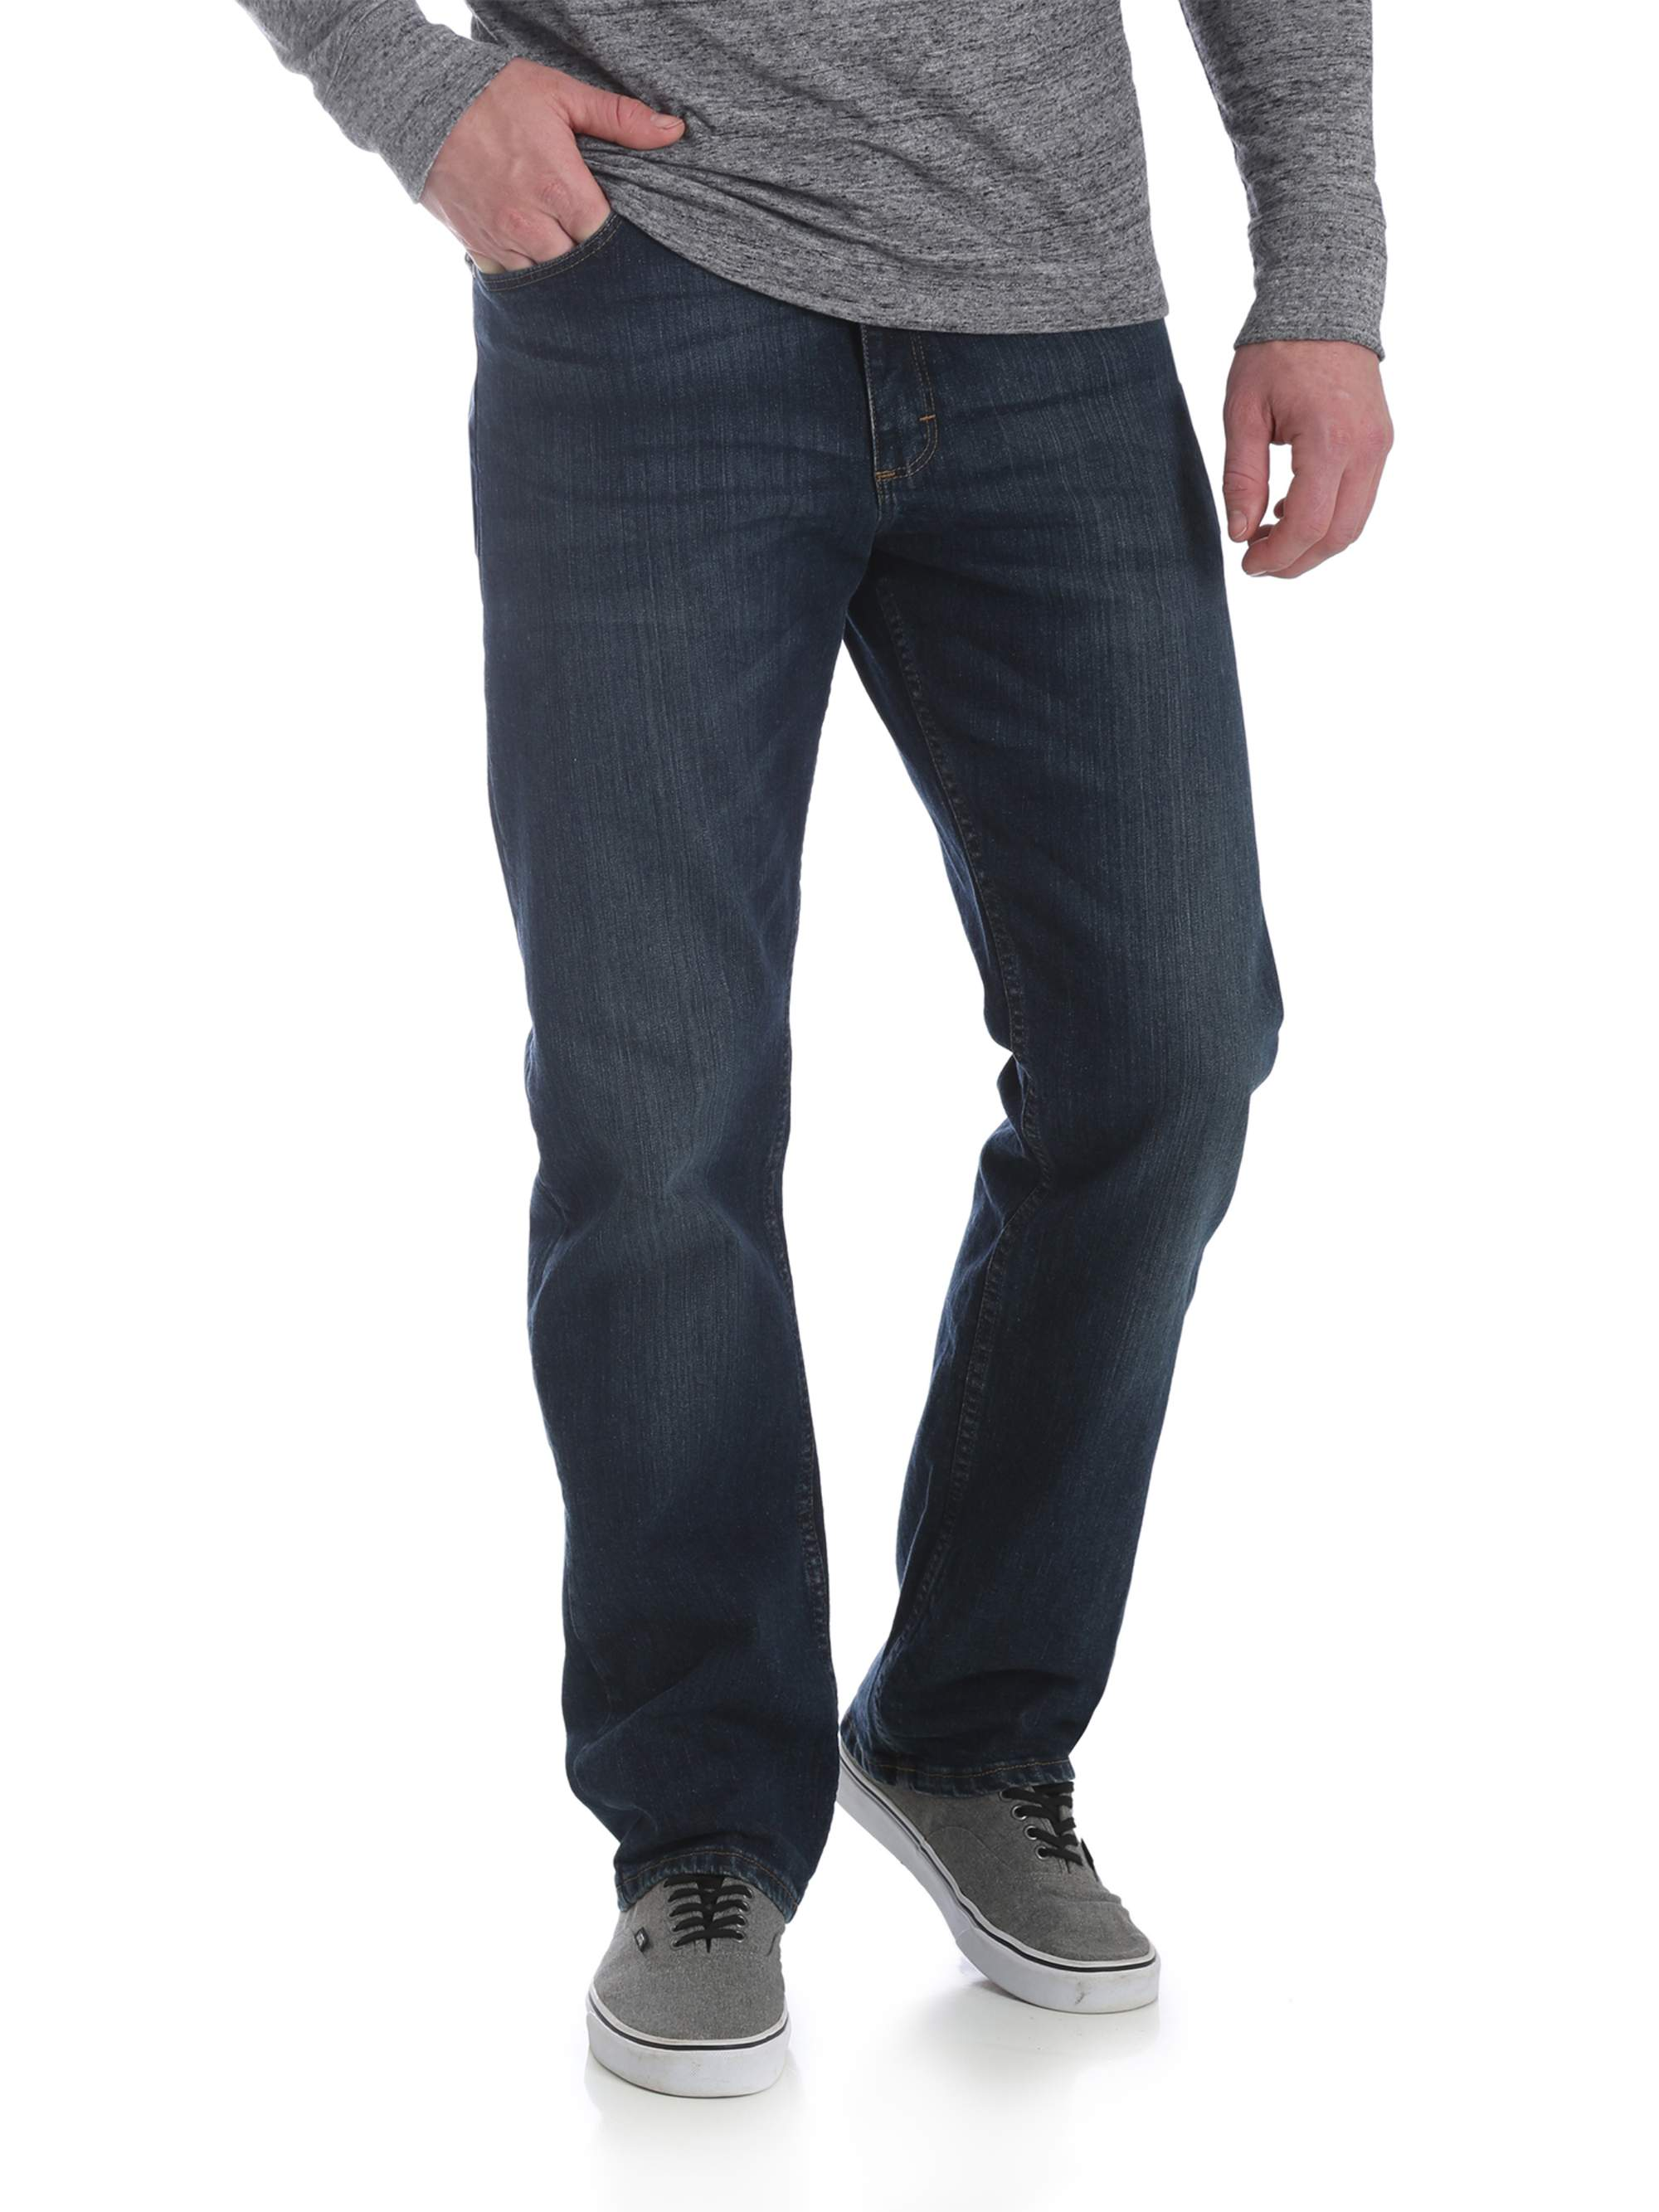 Men's 5 Star Relaxed Fit Jean with Flex